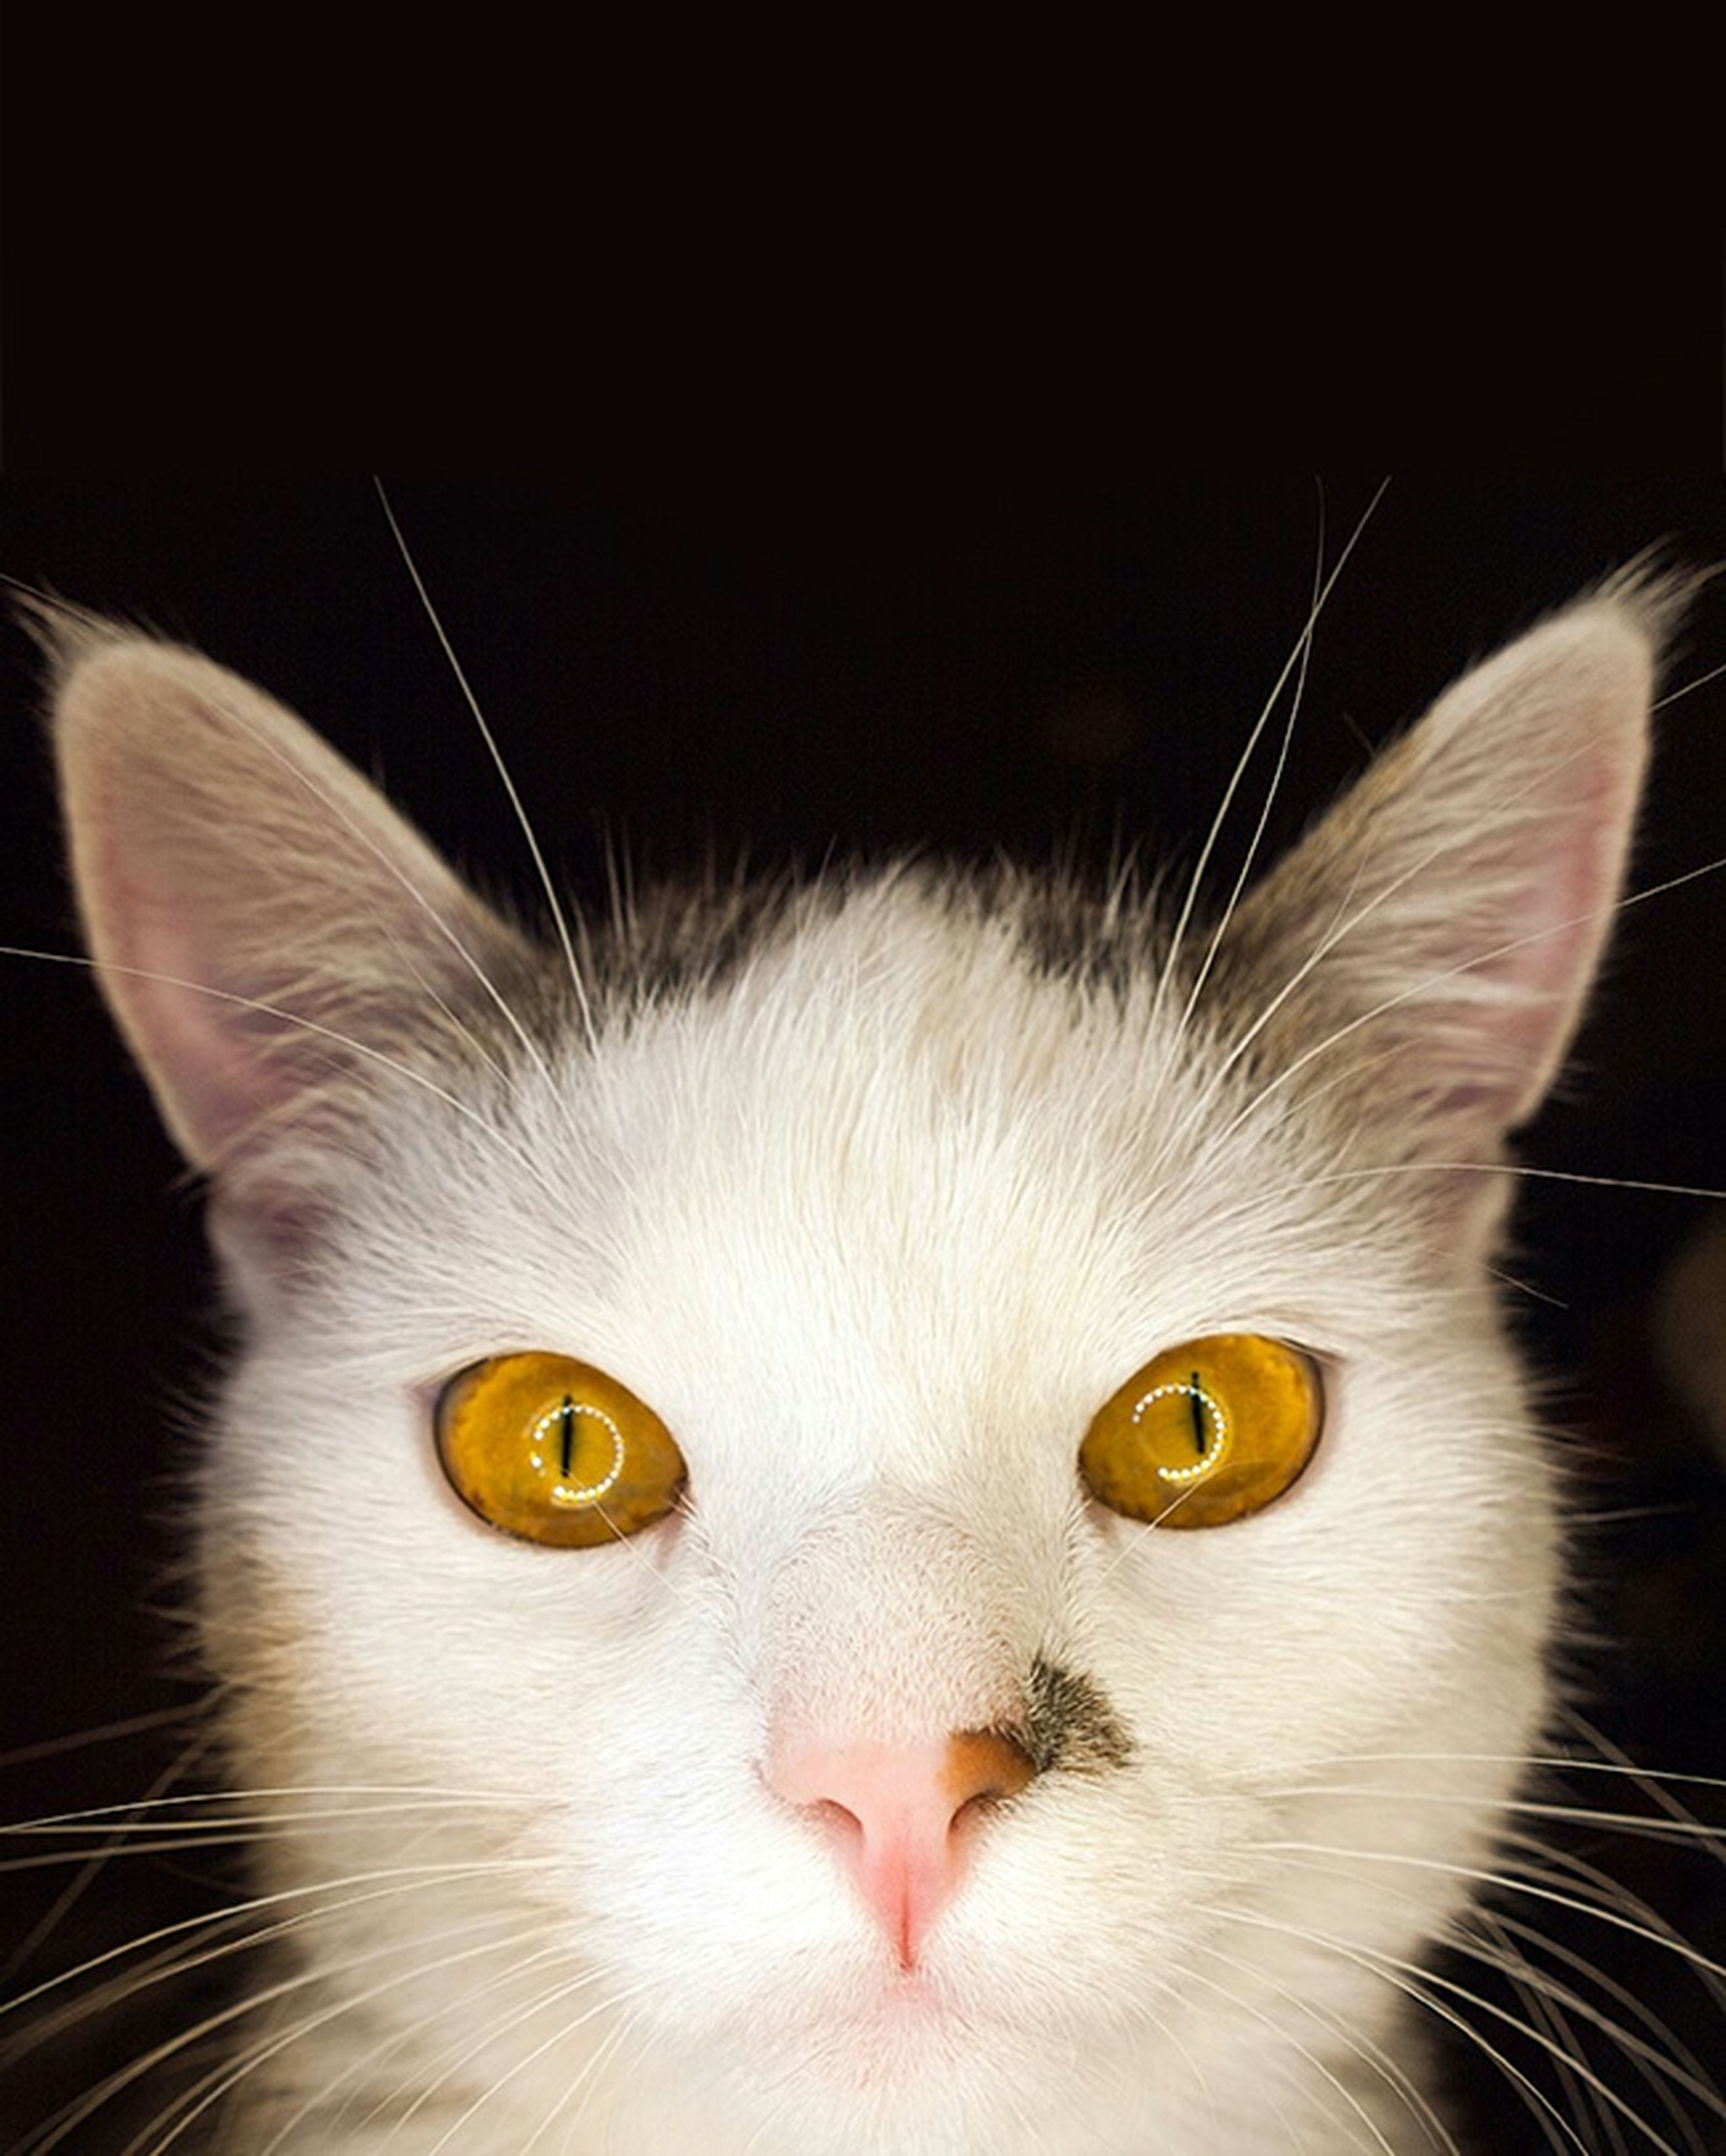 domestic cat, cat, animal themes, one animal, feline, pets, whisker, domestic animals, close-up, looking at camera, animal eye, portrait, animal head, mammal, indoors, staring, alertness, focus on foreground, animal body part, whiskers